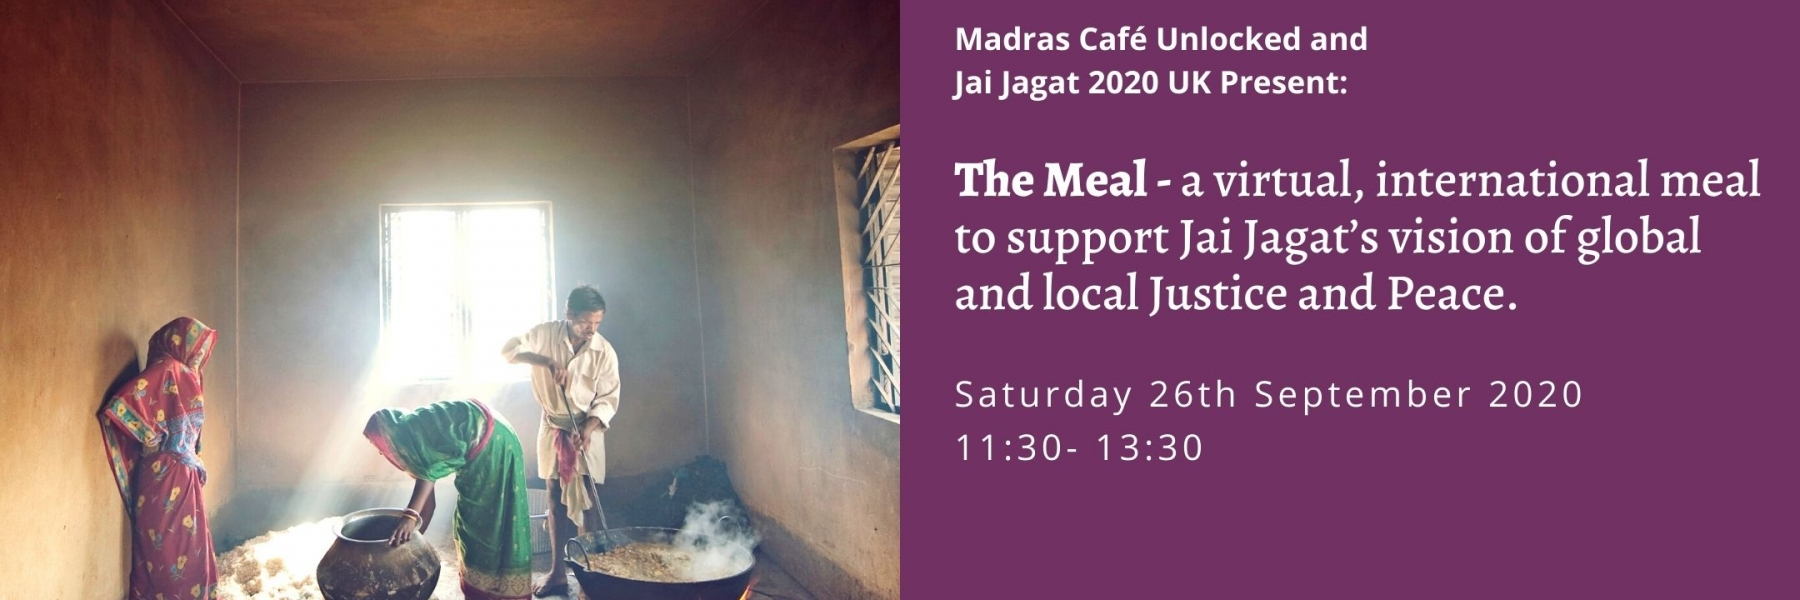 The Meal a virtual, international meal to support Jai Jagat's vision of global and local Justice and Peace